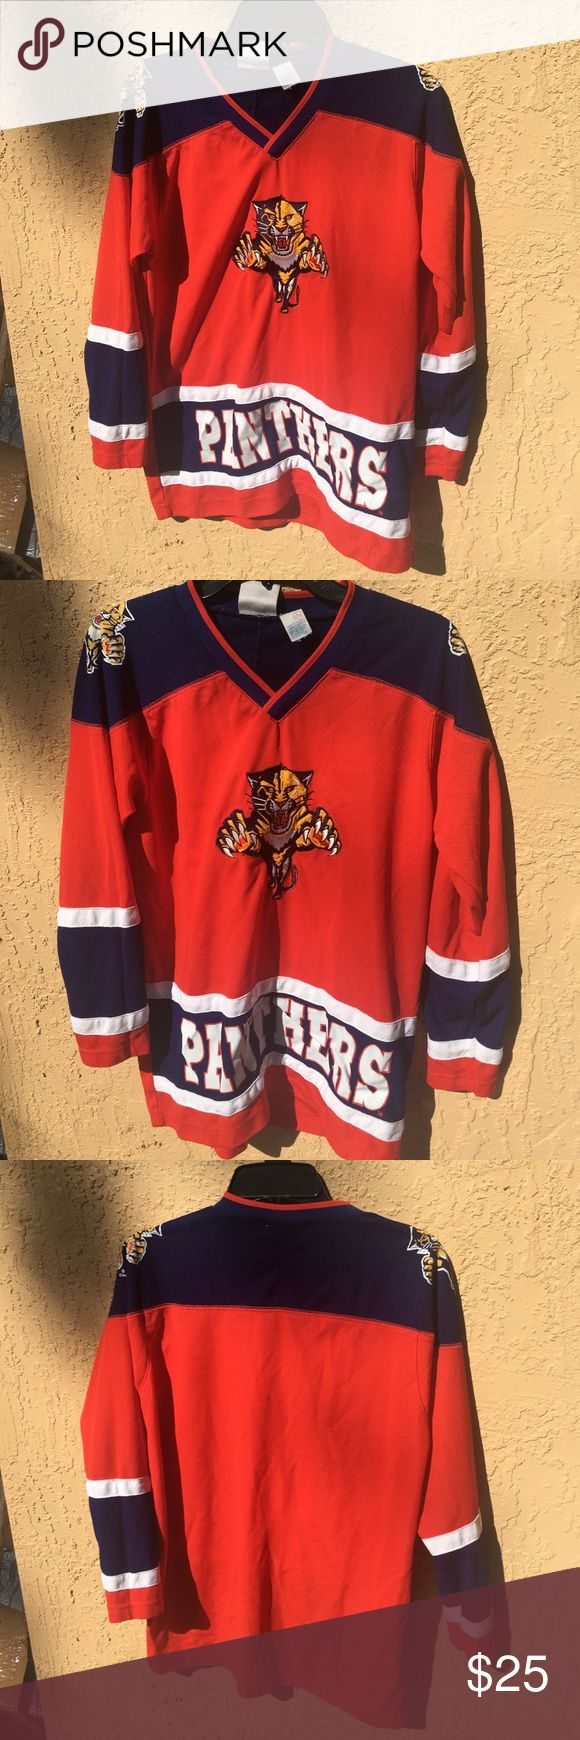 Authentic Florida panthers hockey jersey Size large. Lightly worn. Authentic jersey with stitched emblems and patches.unisex Florida Panthers Shirts Tees - Long Sleeve